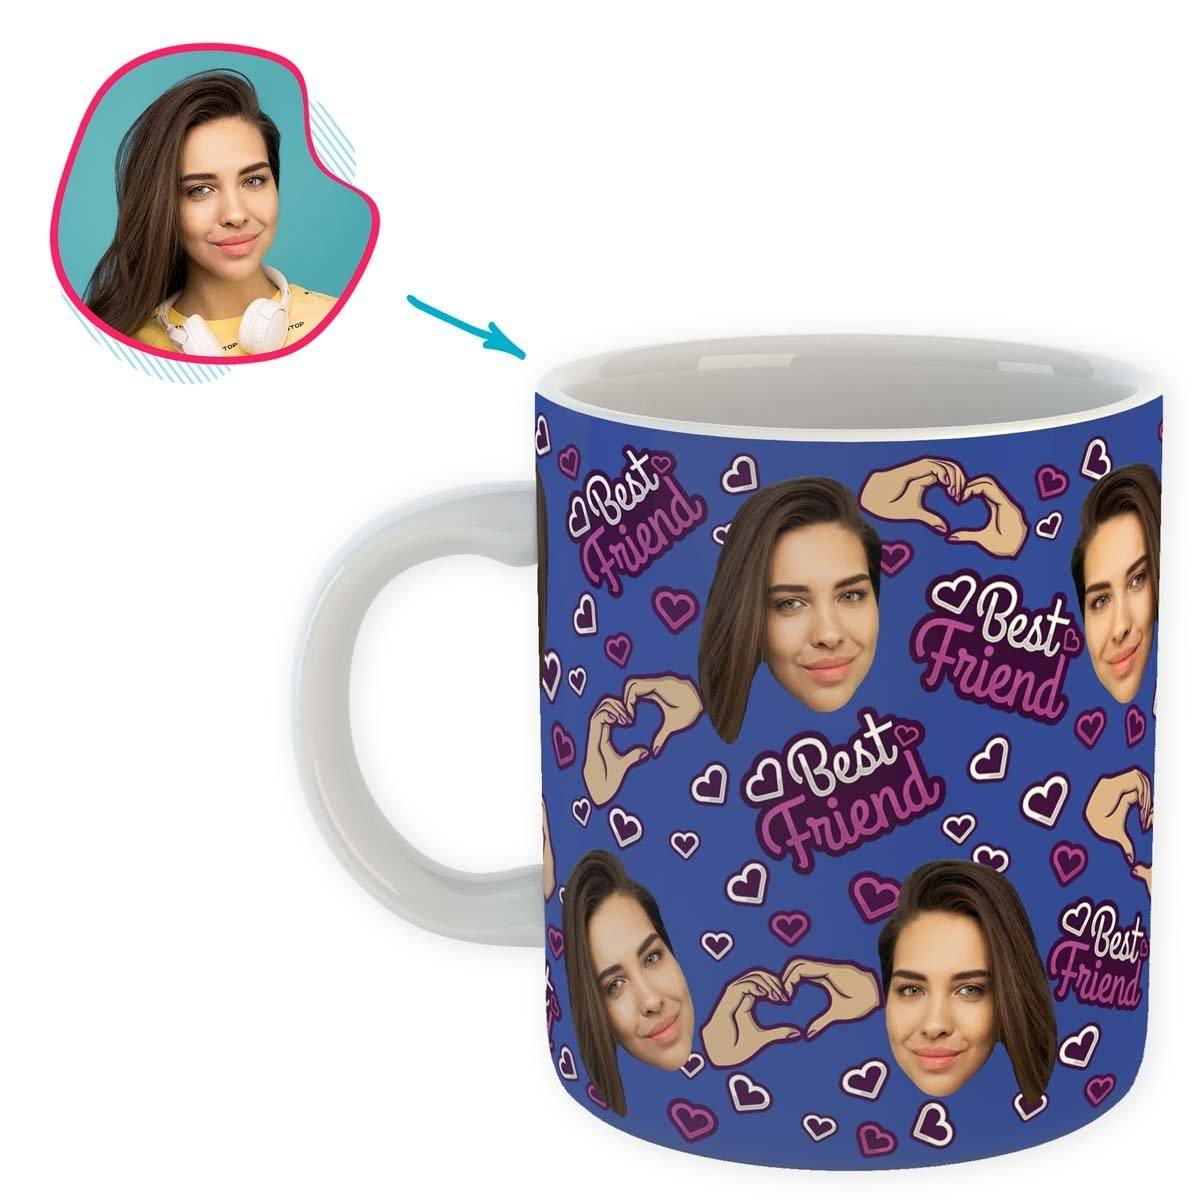 darkblue BFF for Her mug personalized with photo of face printed on it